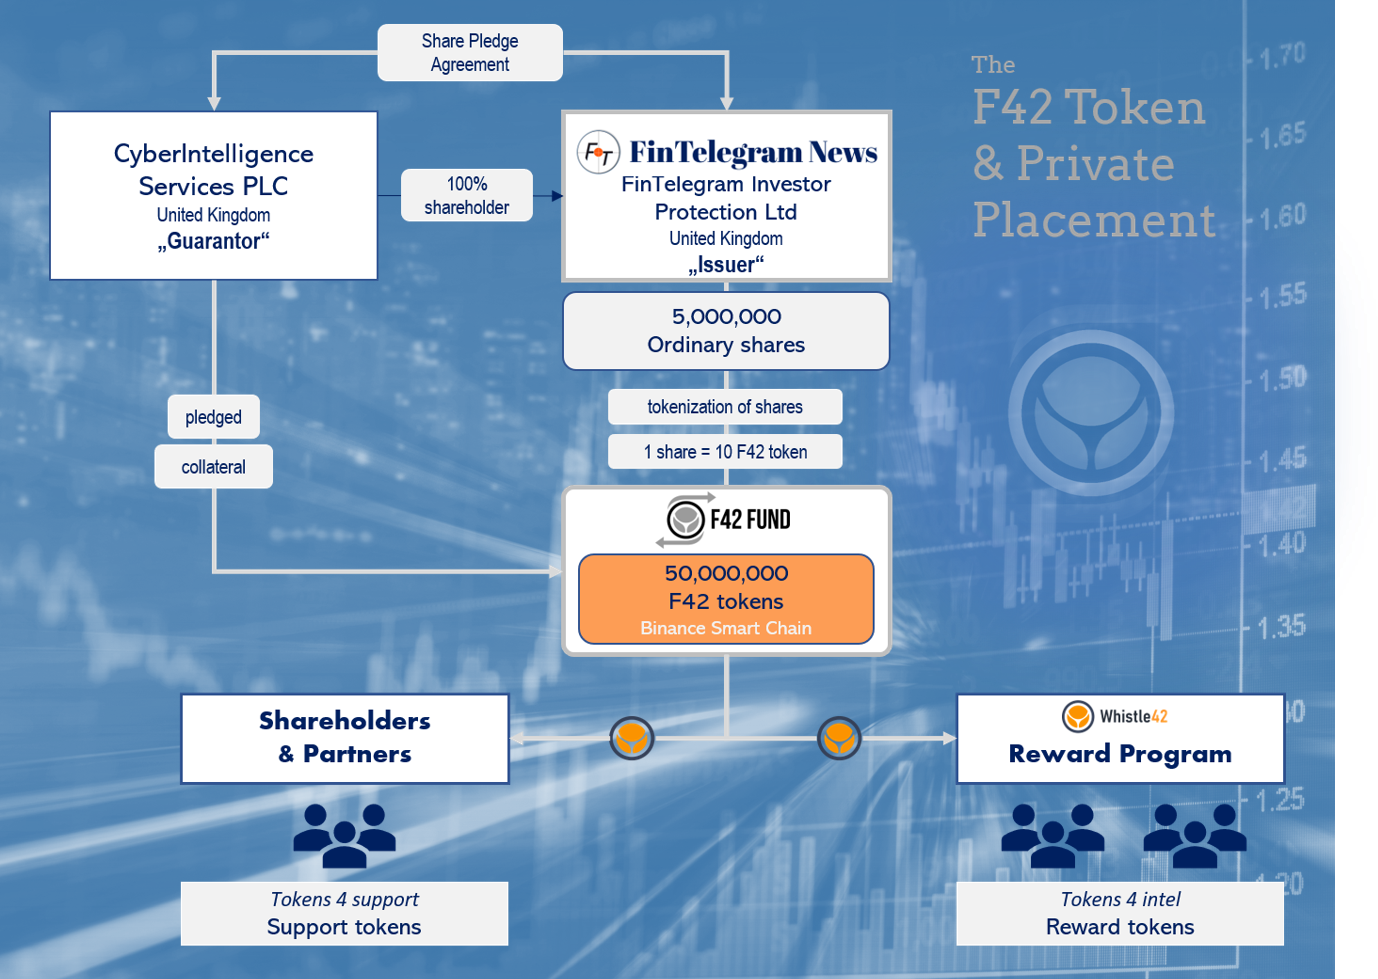 F42 Token Placement